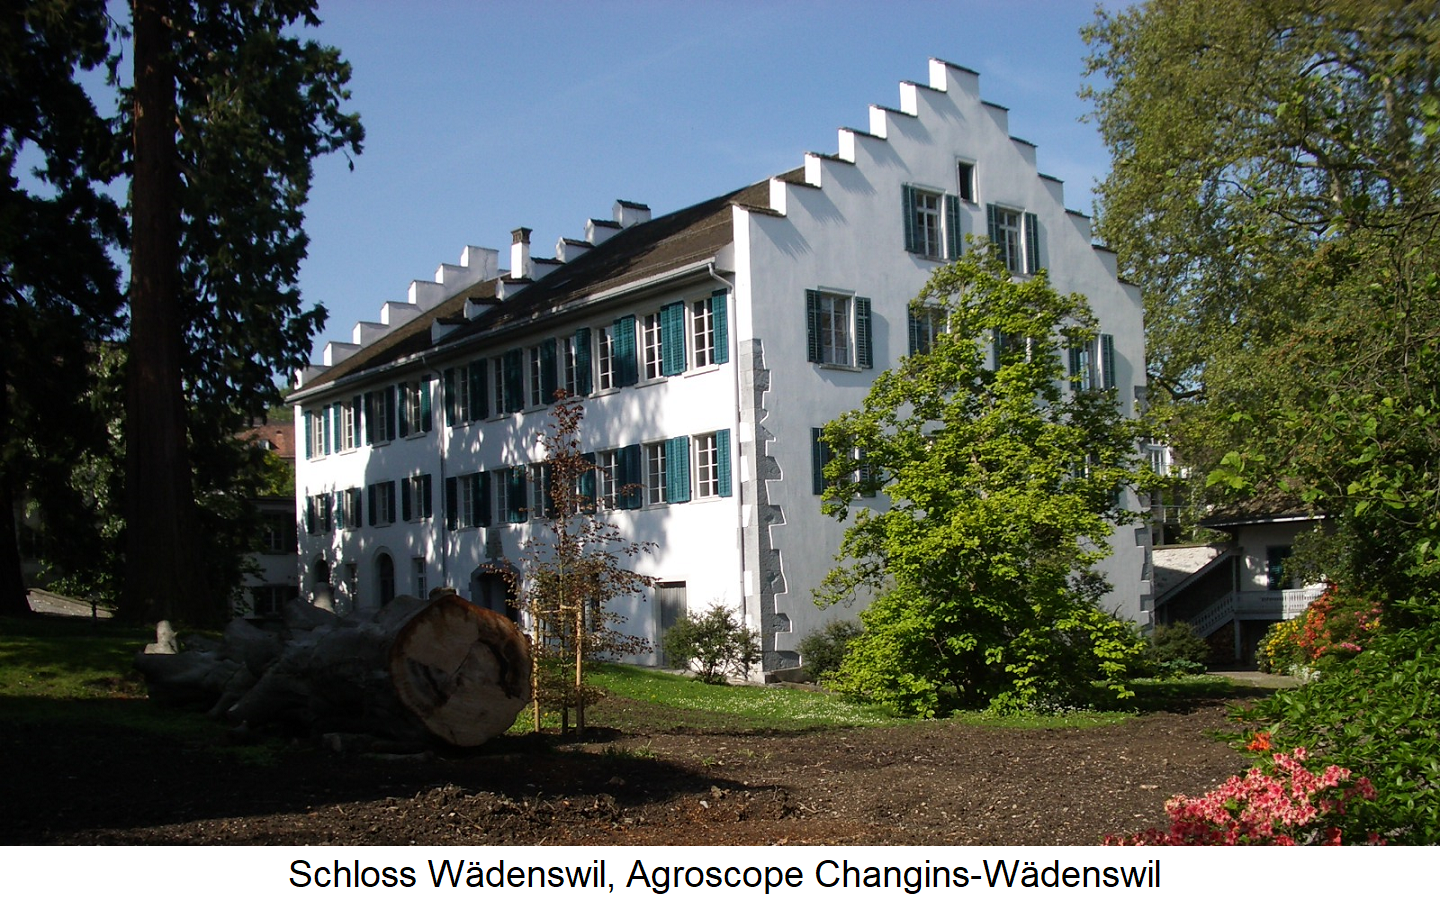 Wädenswil - Wädenswil Castle, Agroscope Changins-Wädenswil